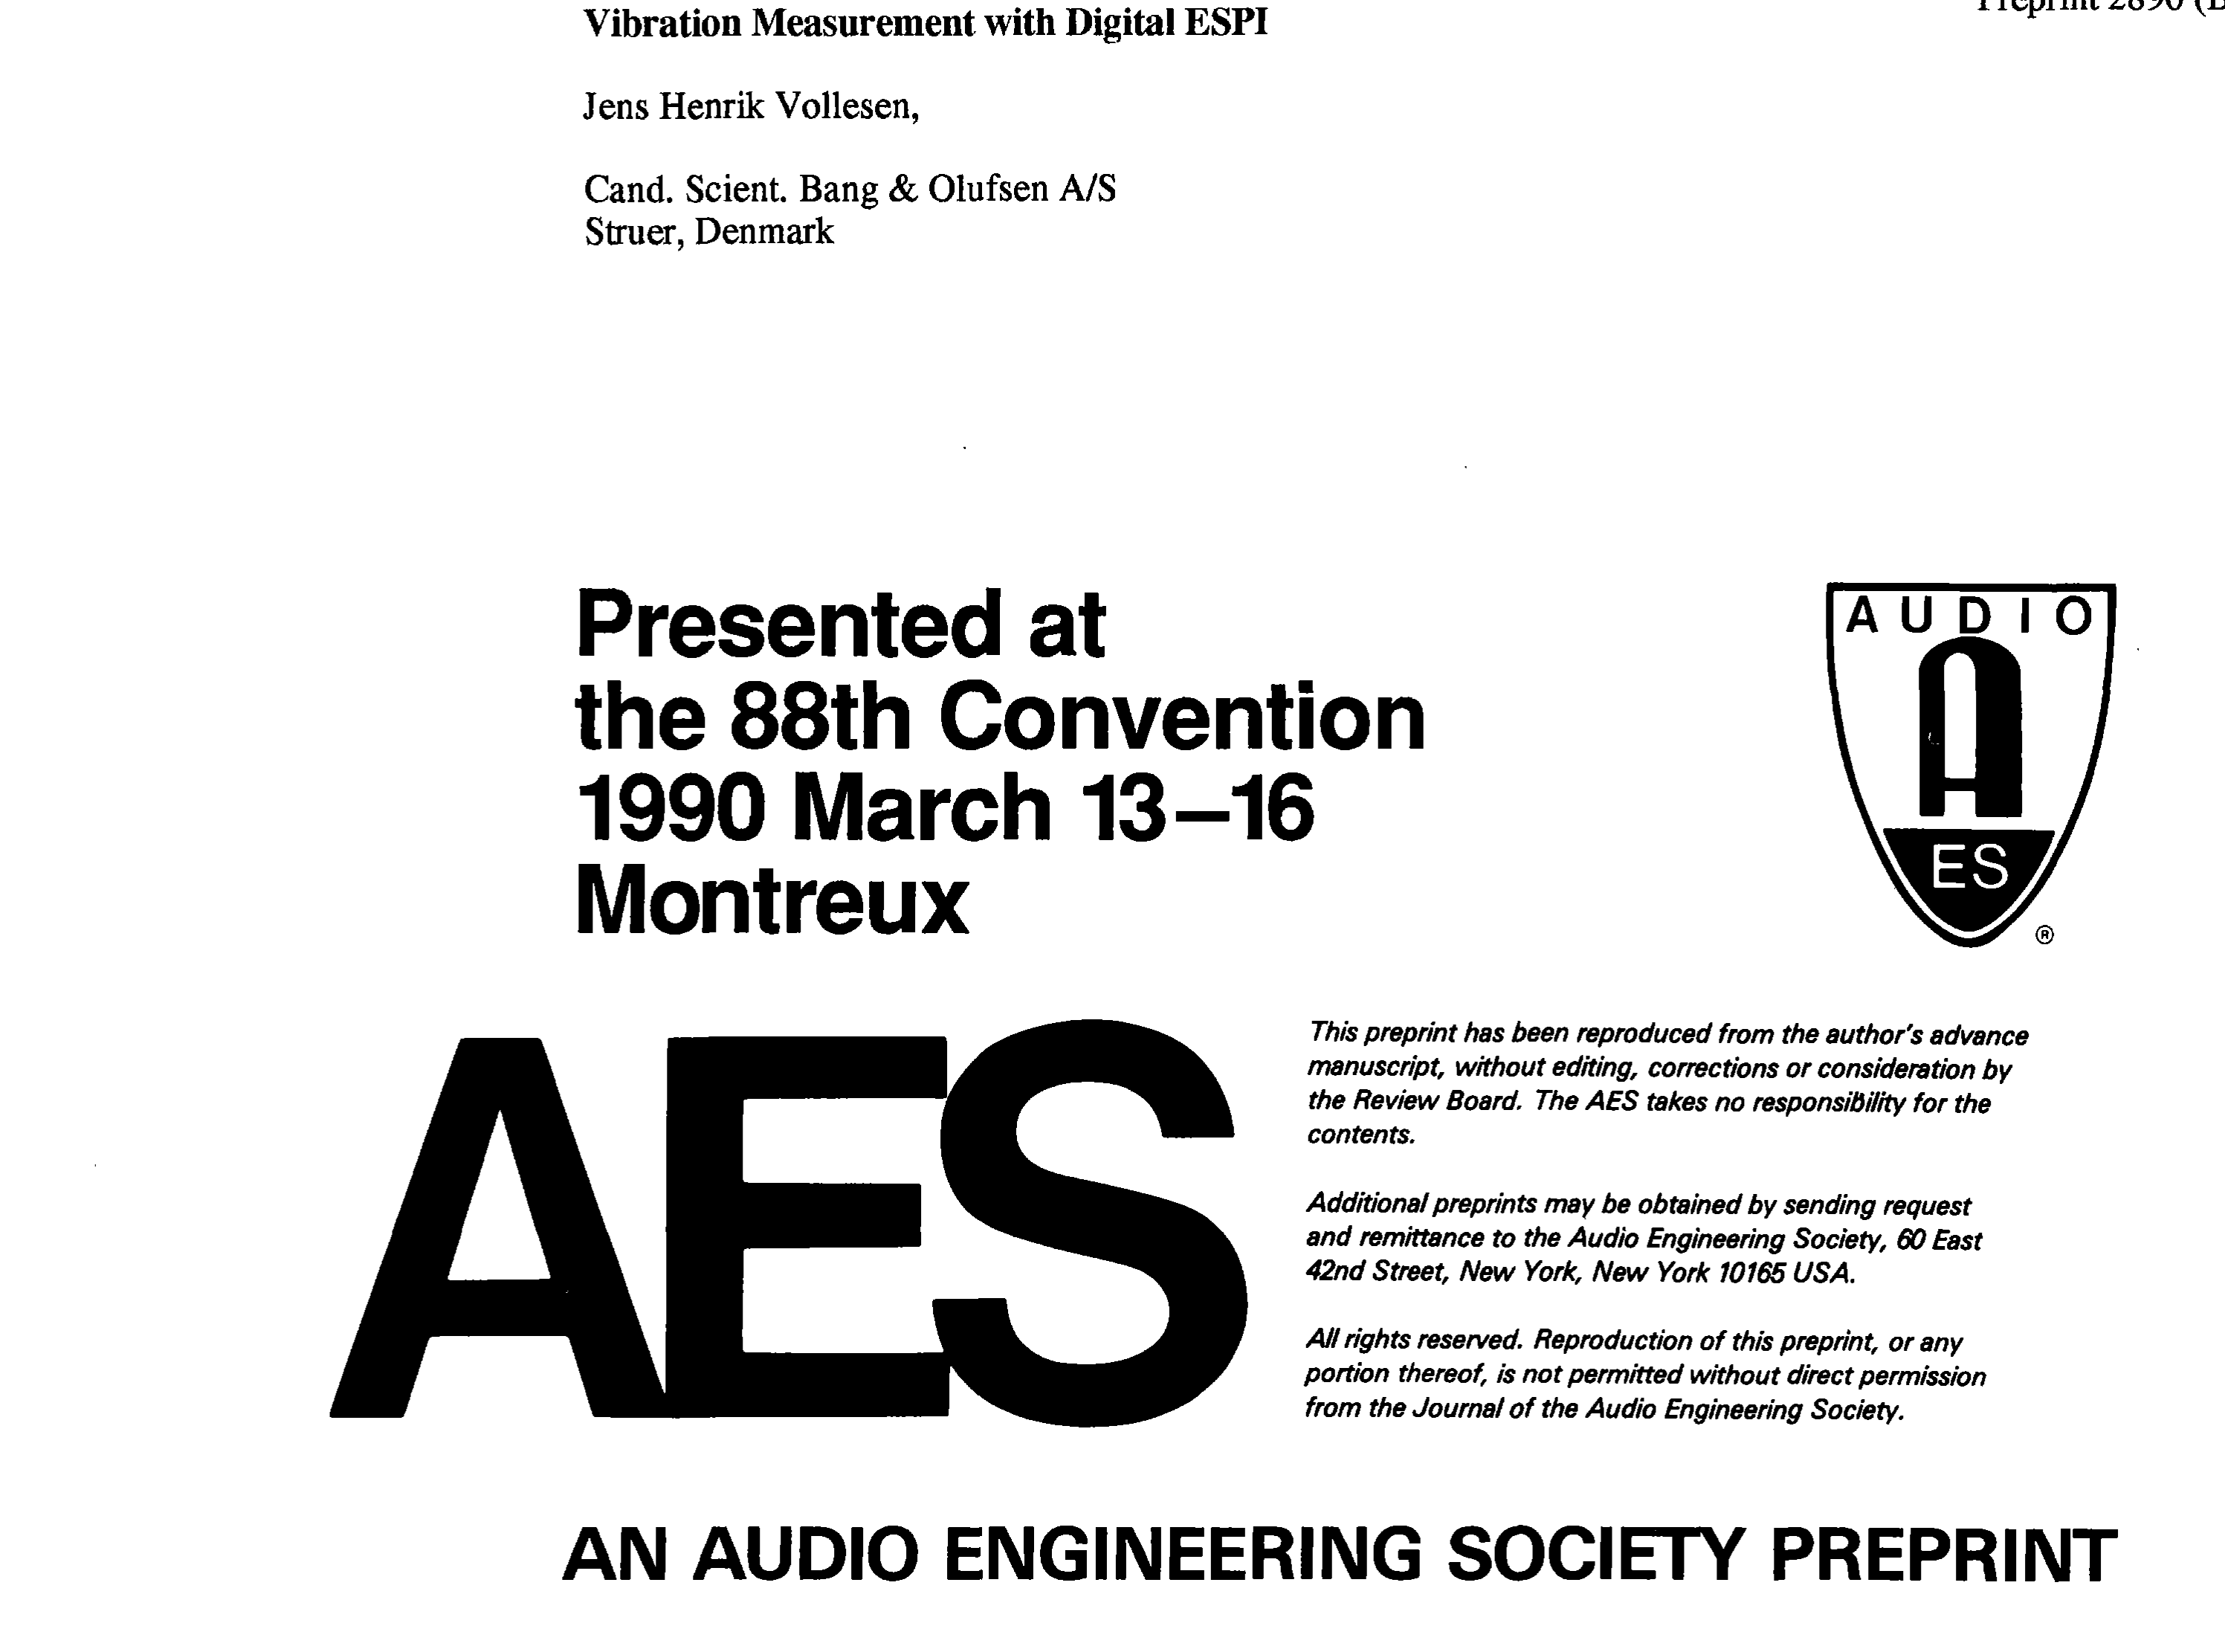 AES E Library Vibration Measurement with Digital ESPI